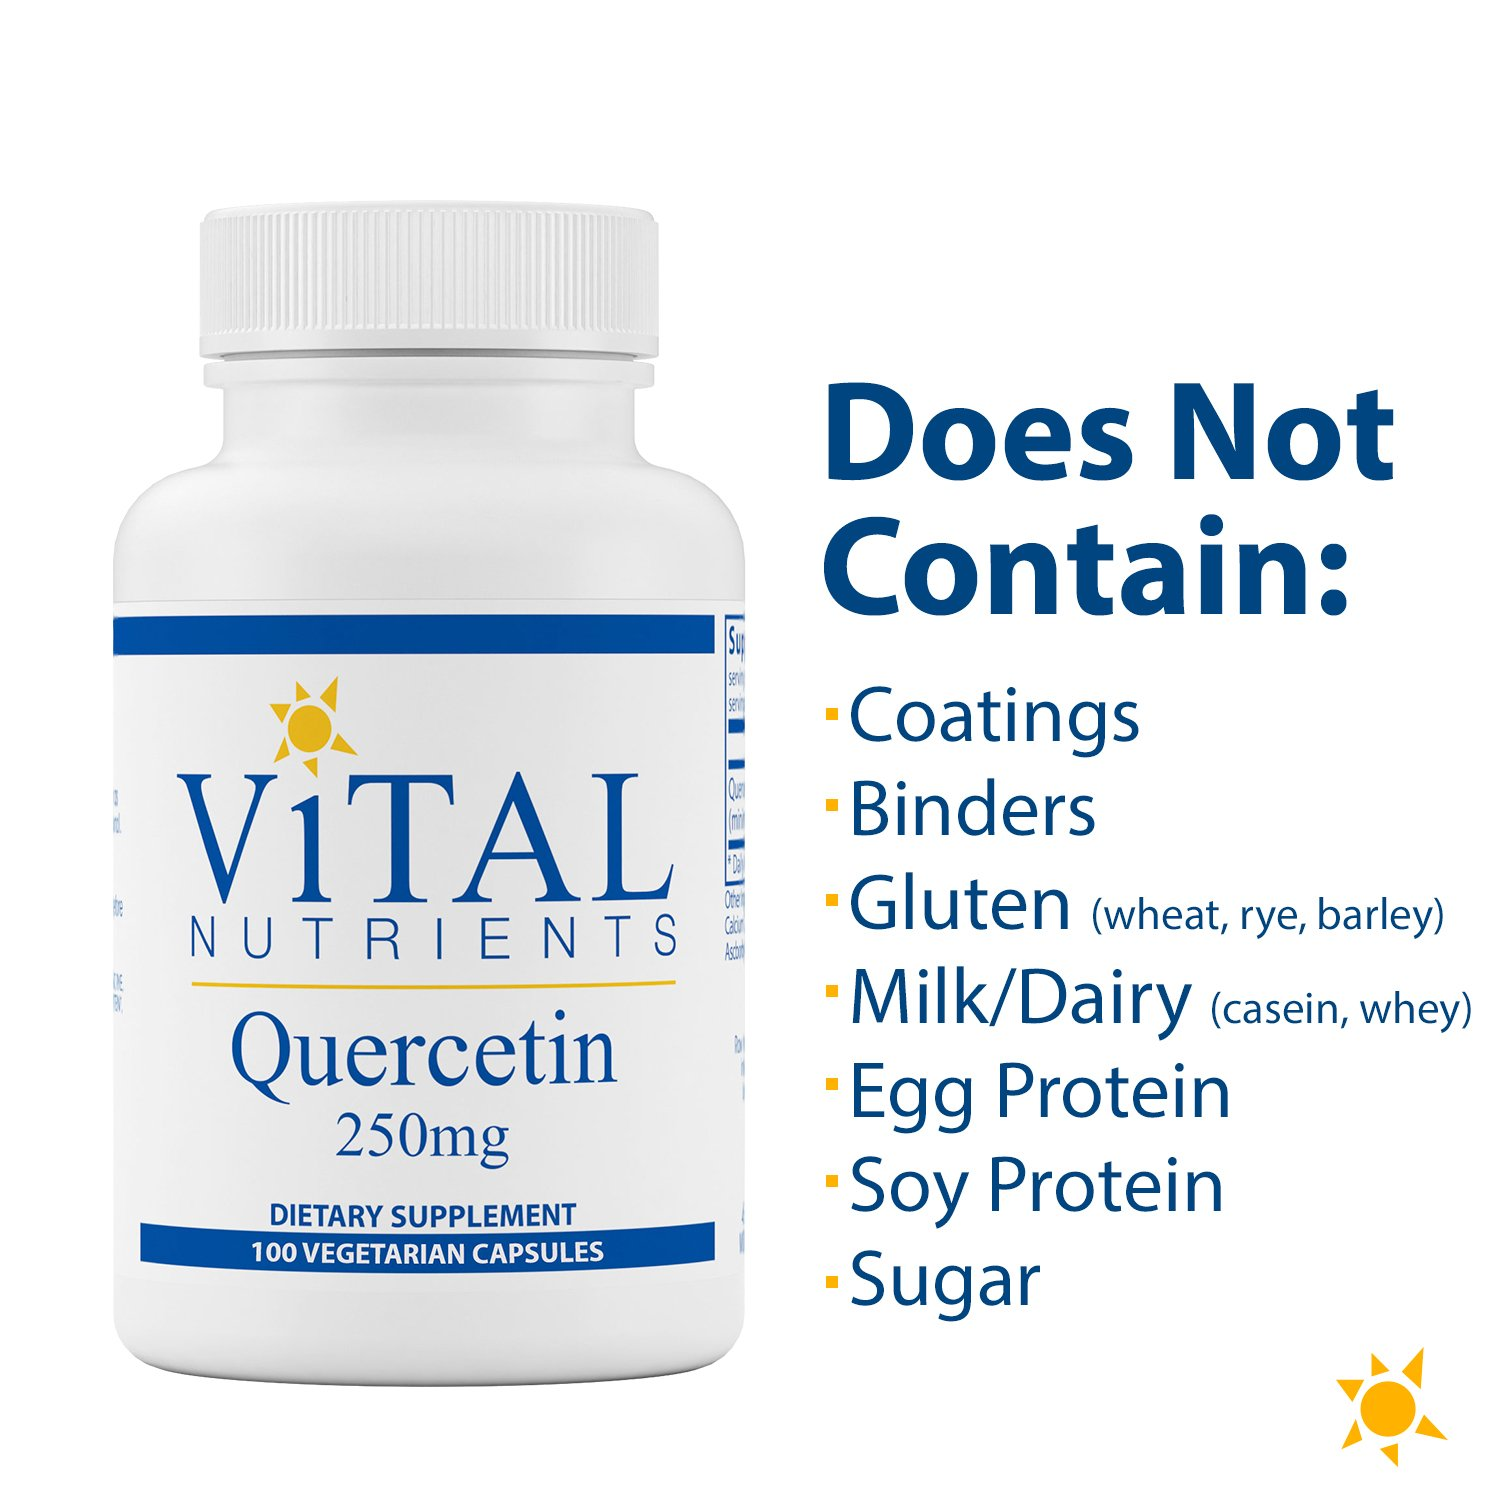 Amazon.com: Vital Nutrients - Quercetin 250 mg - Respiratory & Sinus Support - 100 Vegetarian Capsules: Health & Personal Care